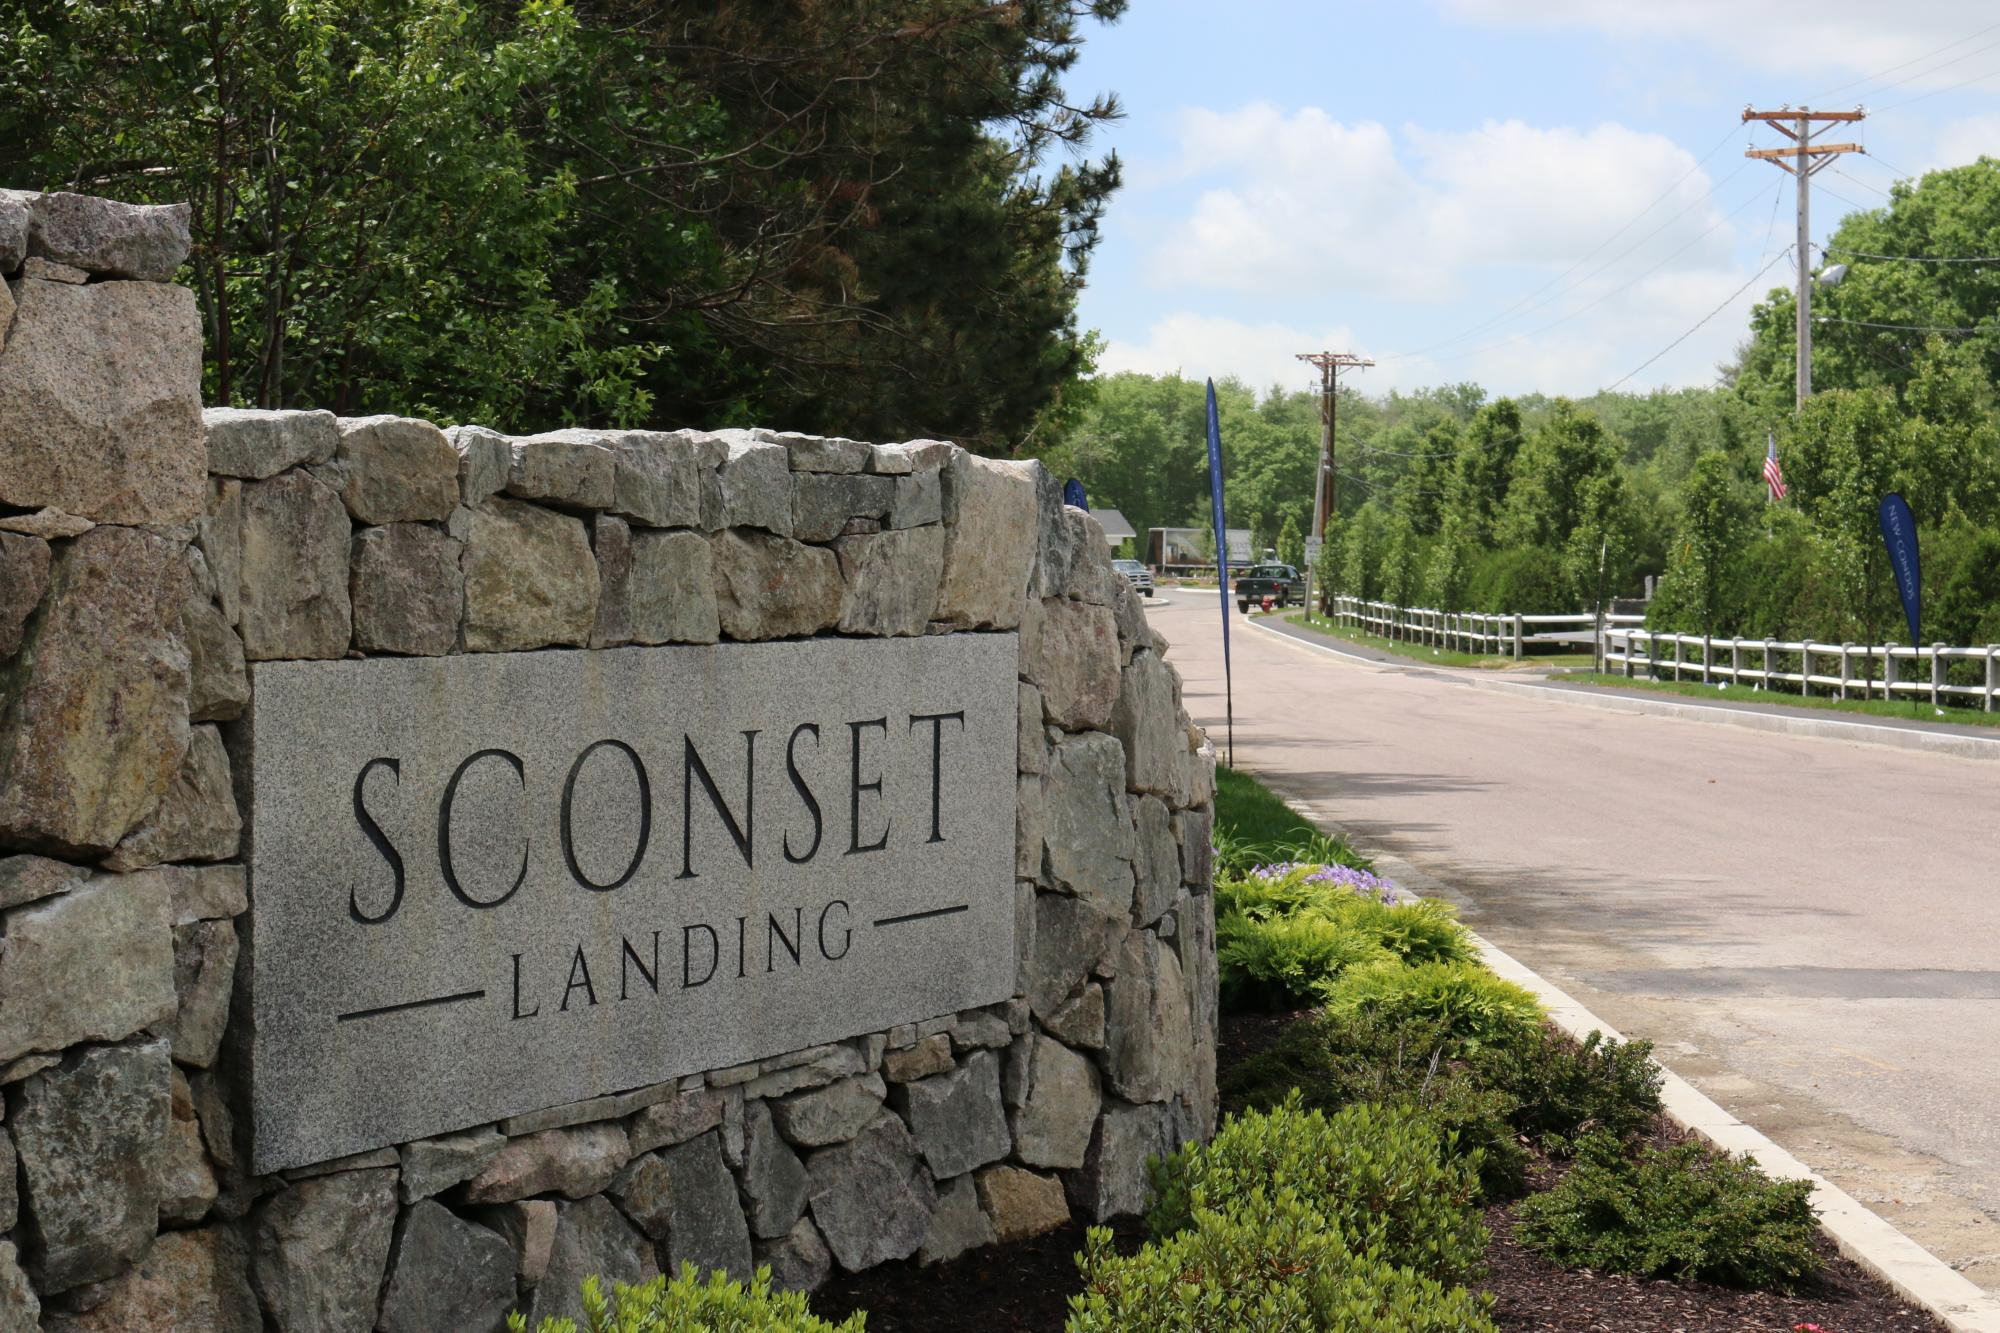 Sconset Landing Entrance